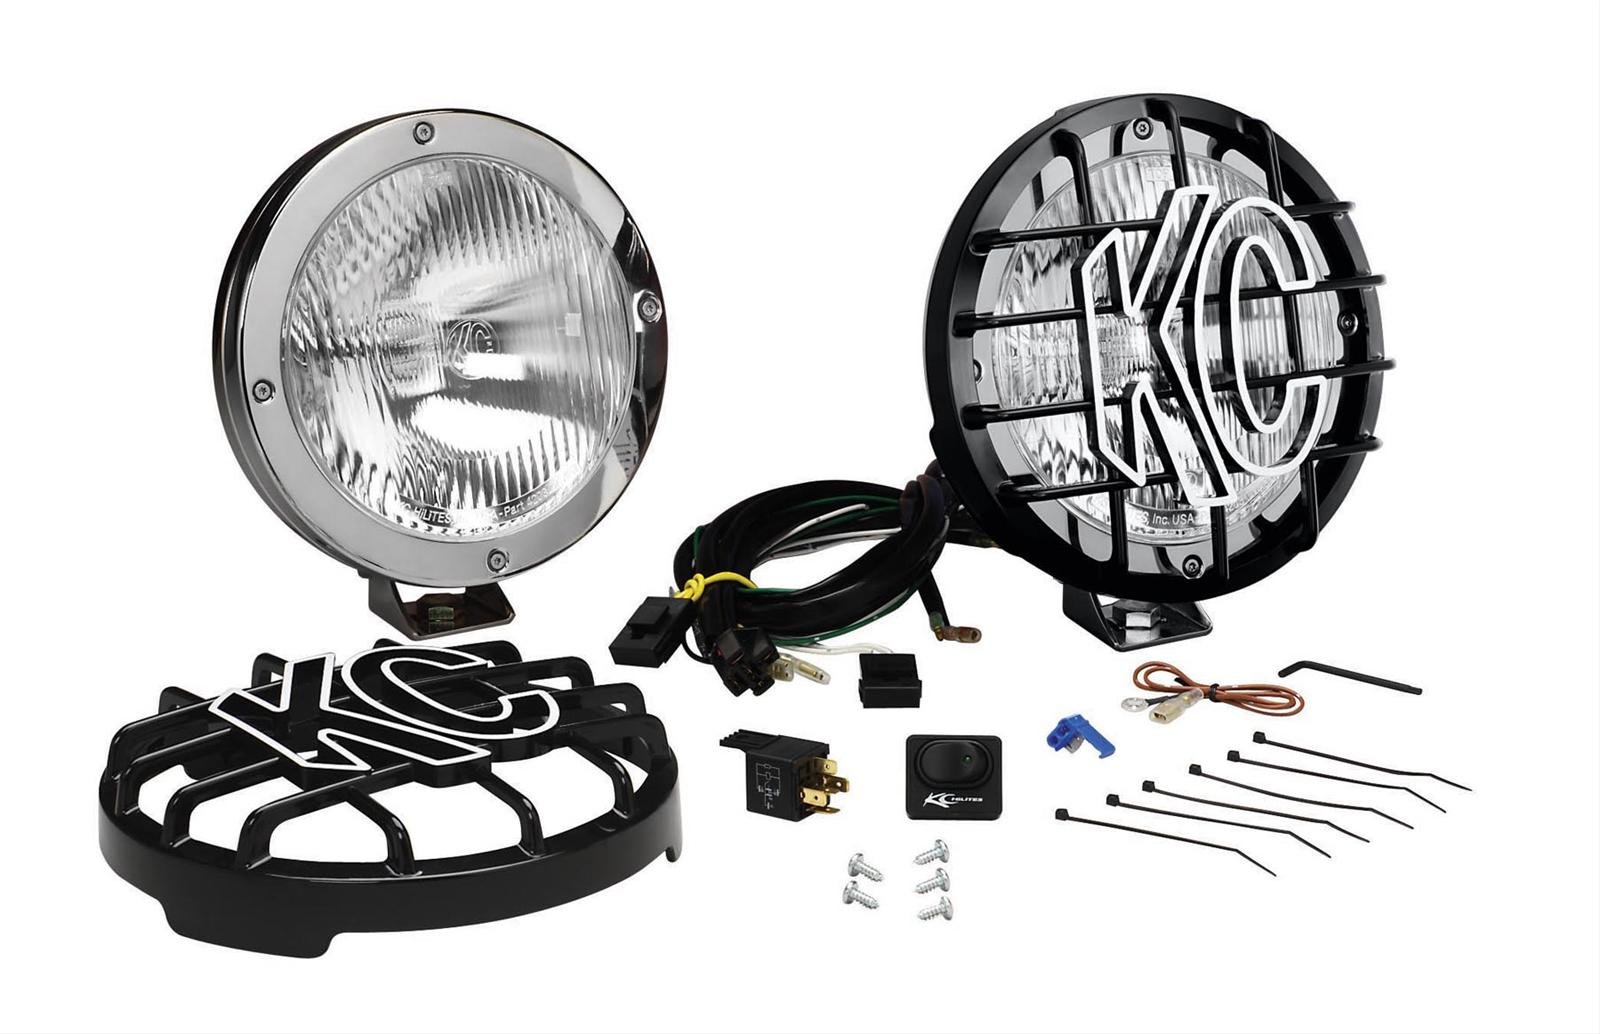 Wondrous Kc Hilites Rally 800 Series Lights 802 Free Shipping On Orders Wiring Cloud Hisonuggs Outletorg